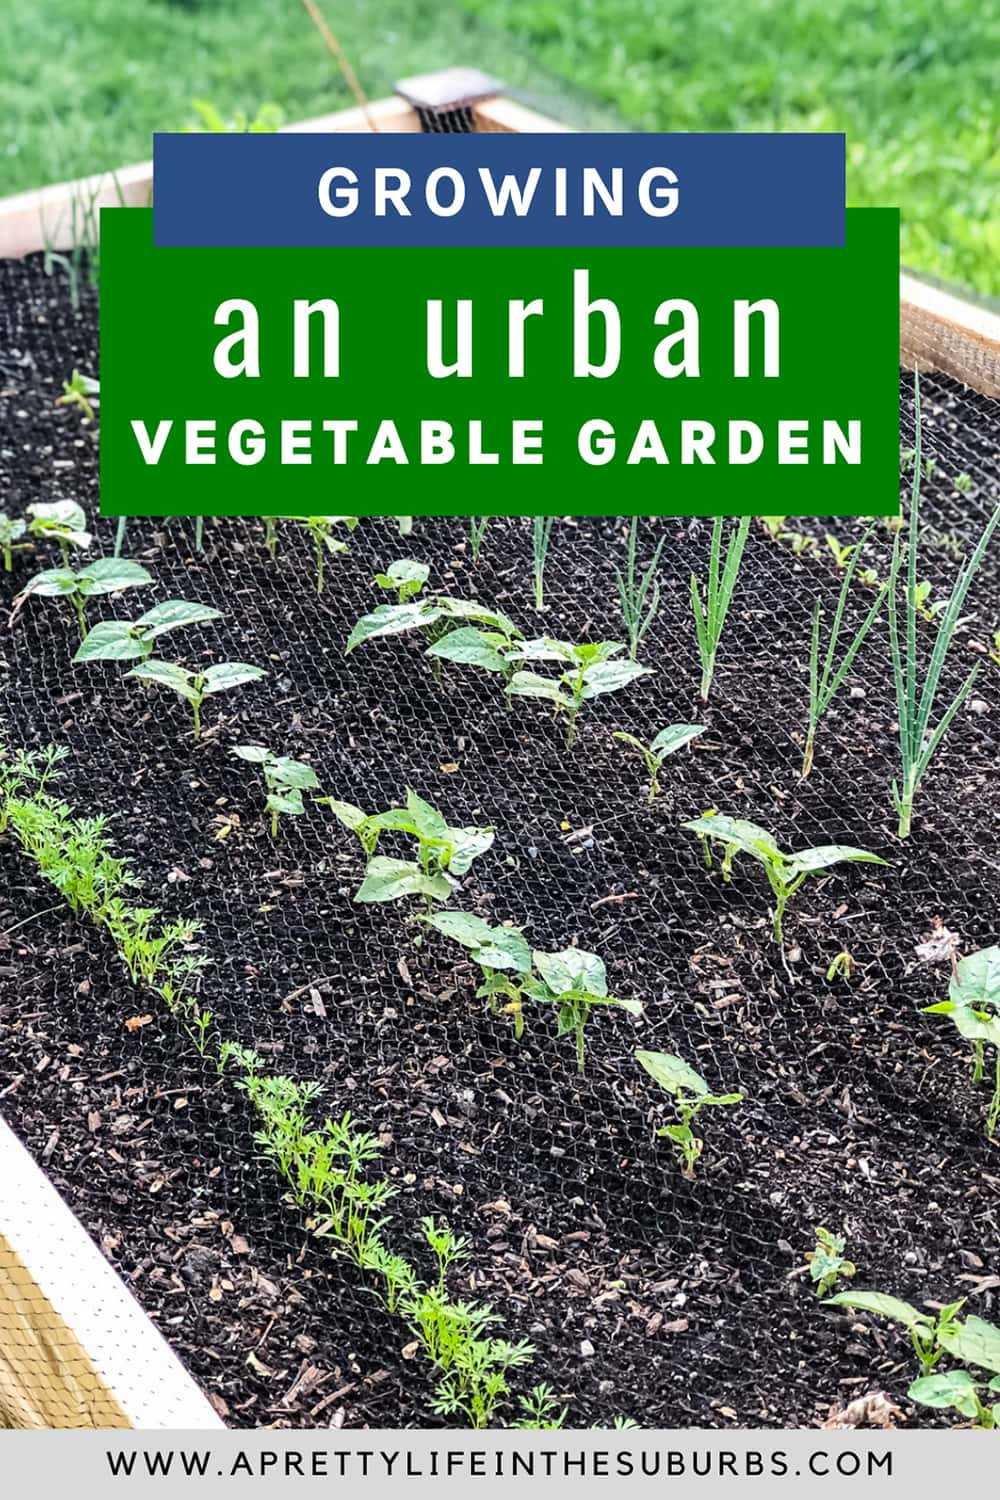 Ideas and inspiration for growing an Urban Vegetable Garden.